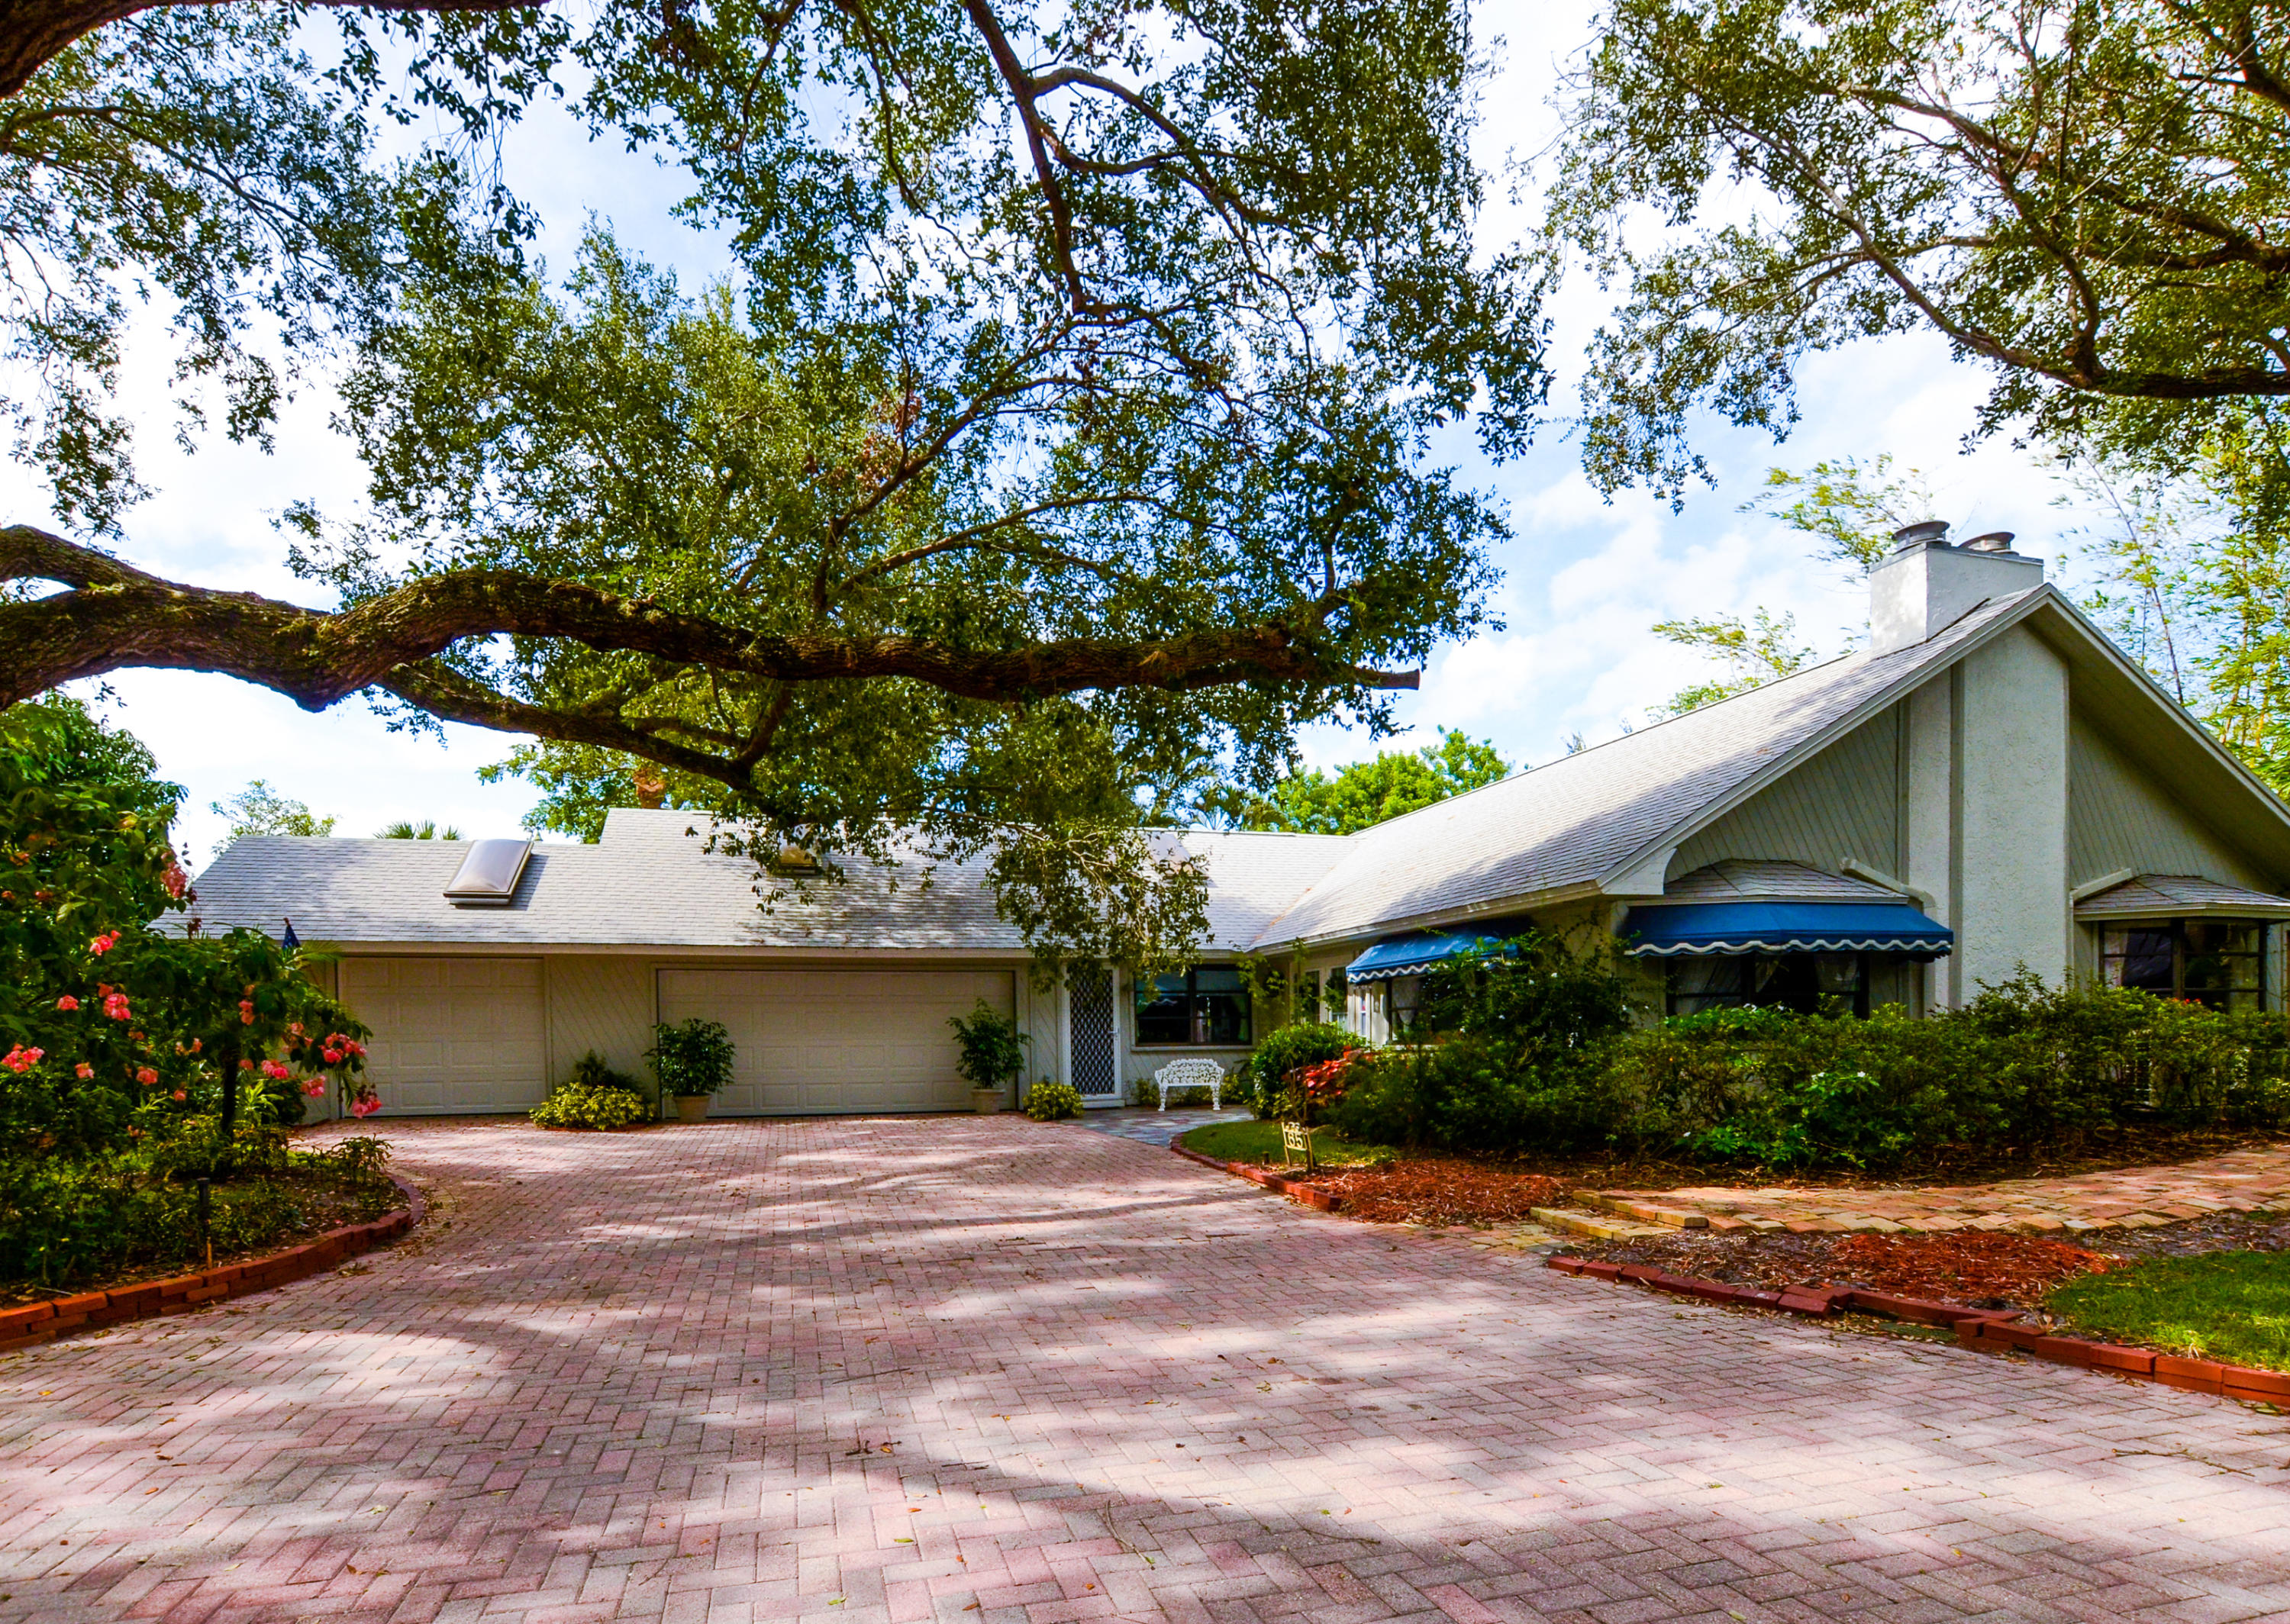 POINT ST LUCIE REAL ESTATE